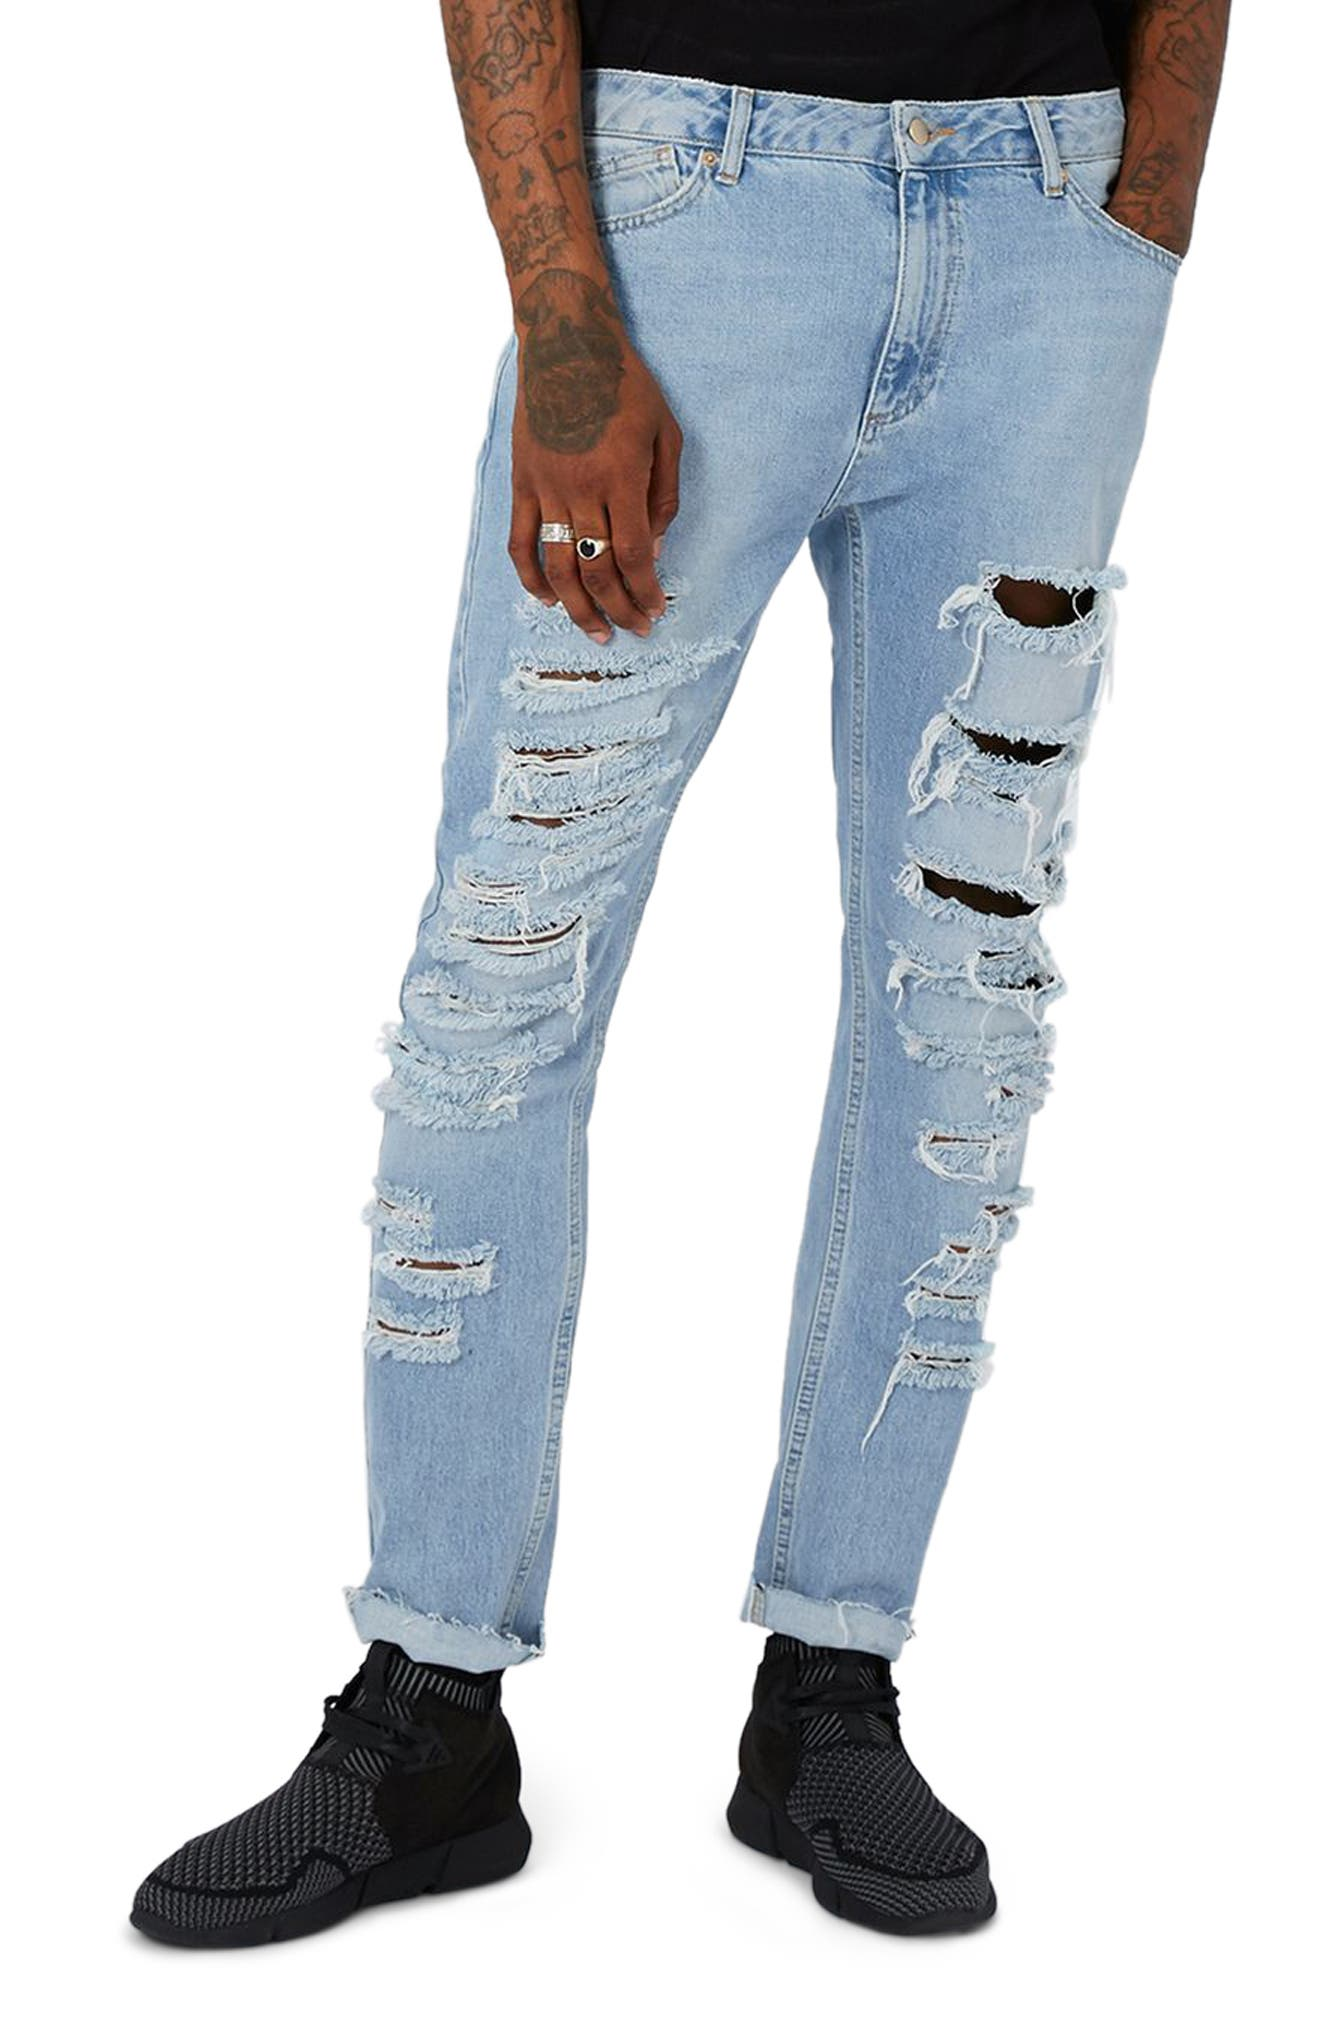 AAA Collection Shredded Skinny Jeans,                         Main,                         color, Blue